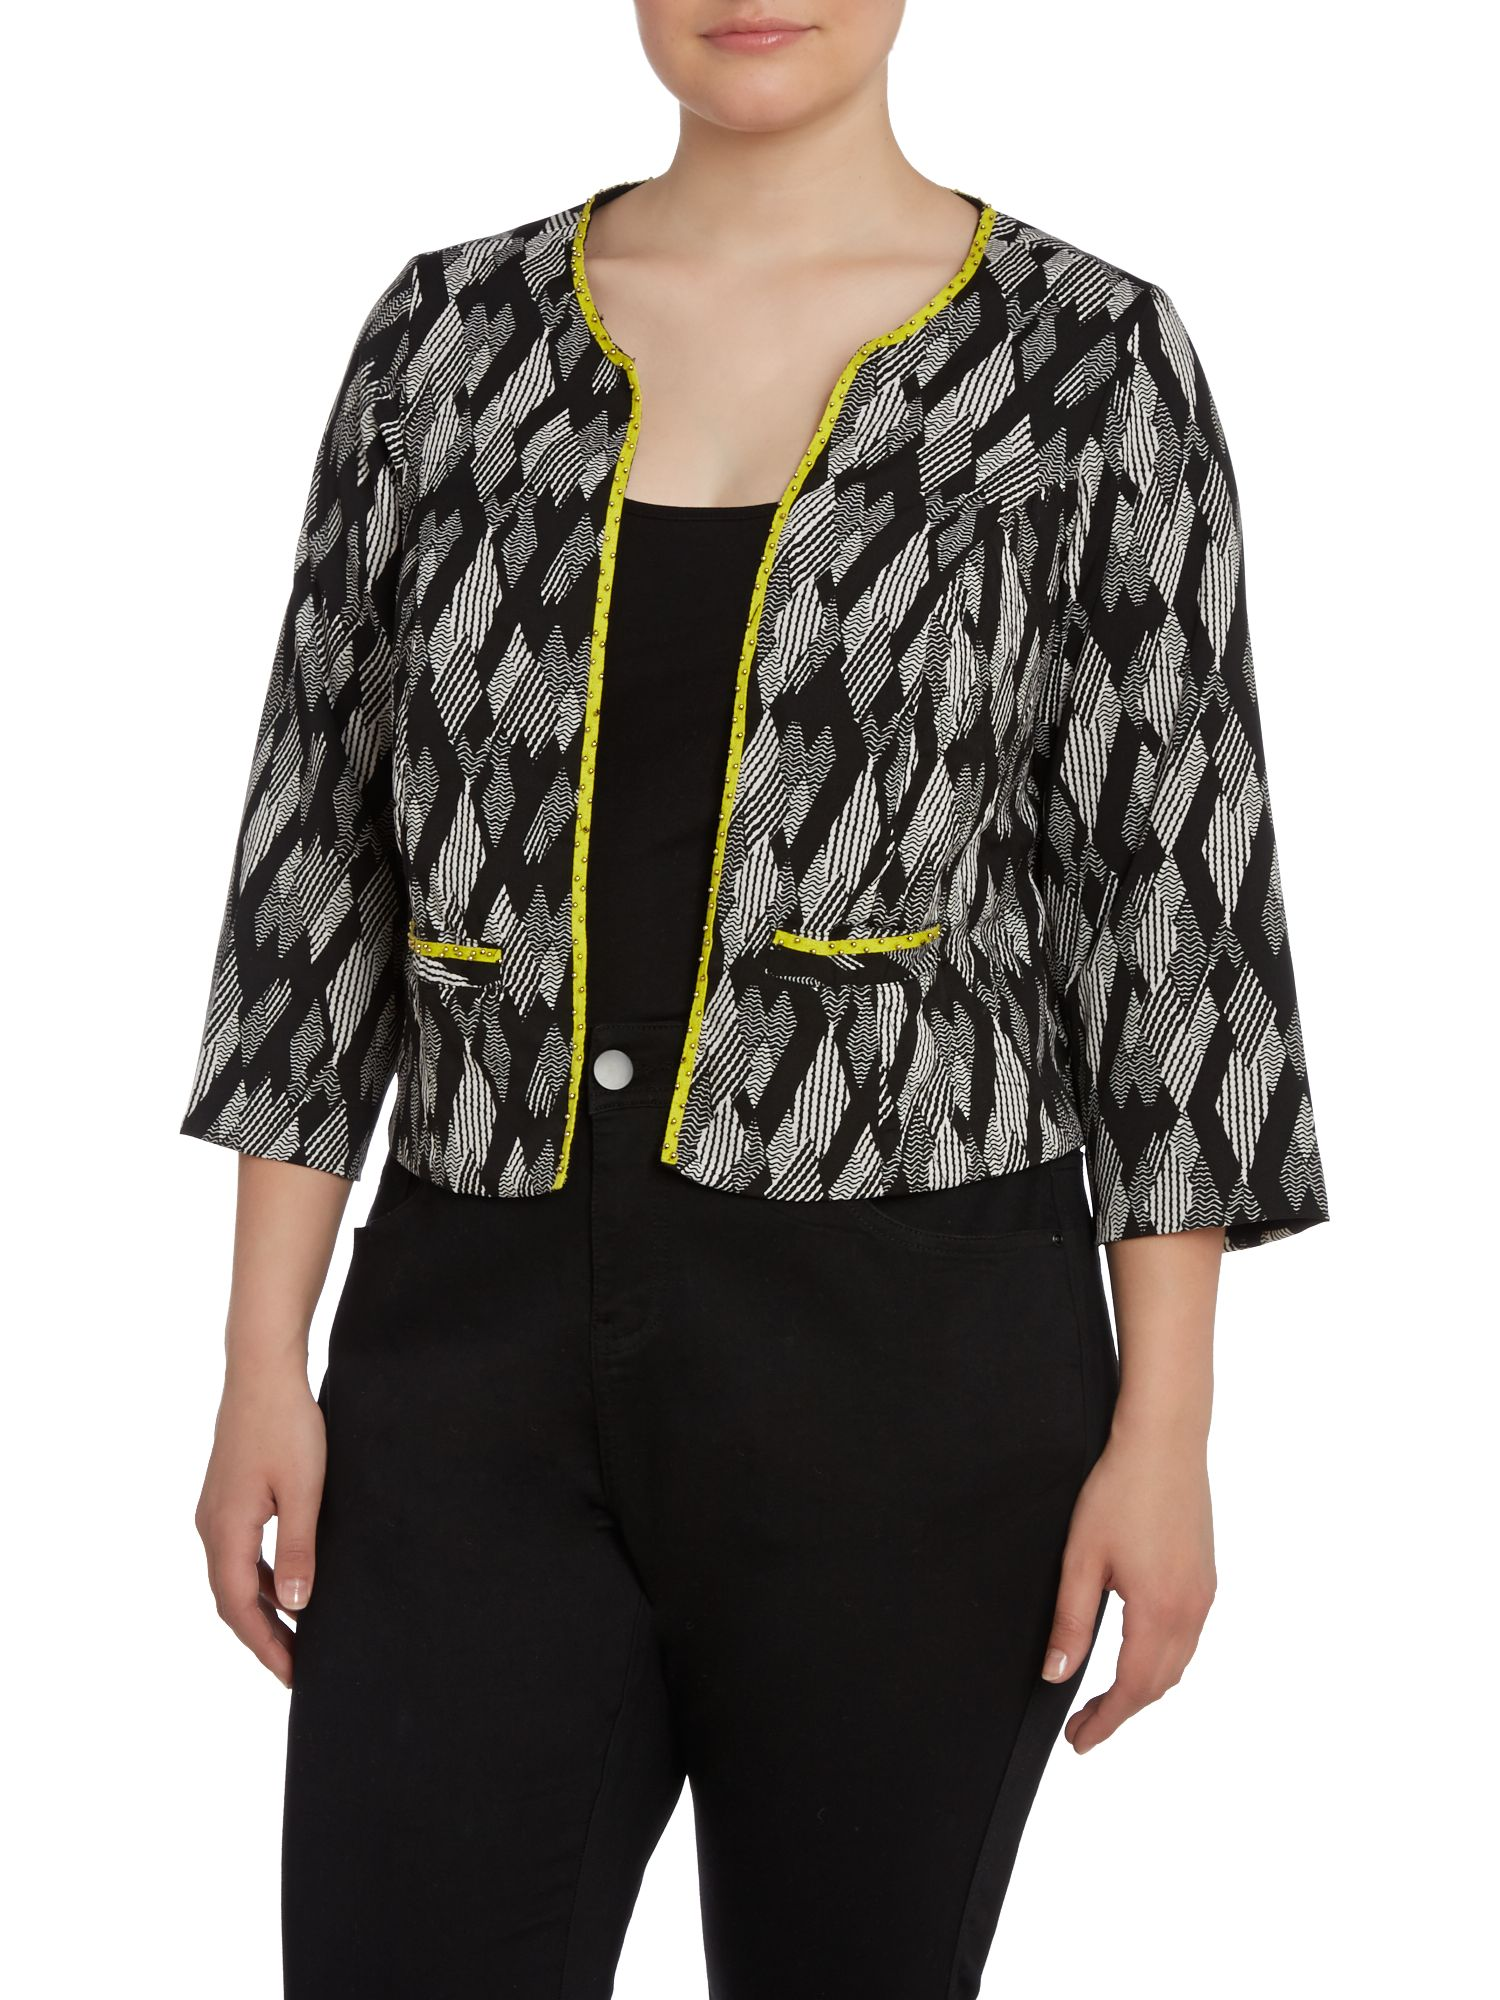 Black and white print jacket